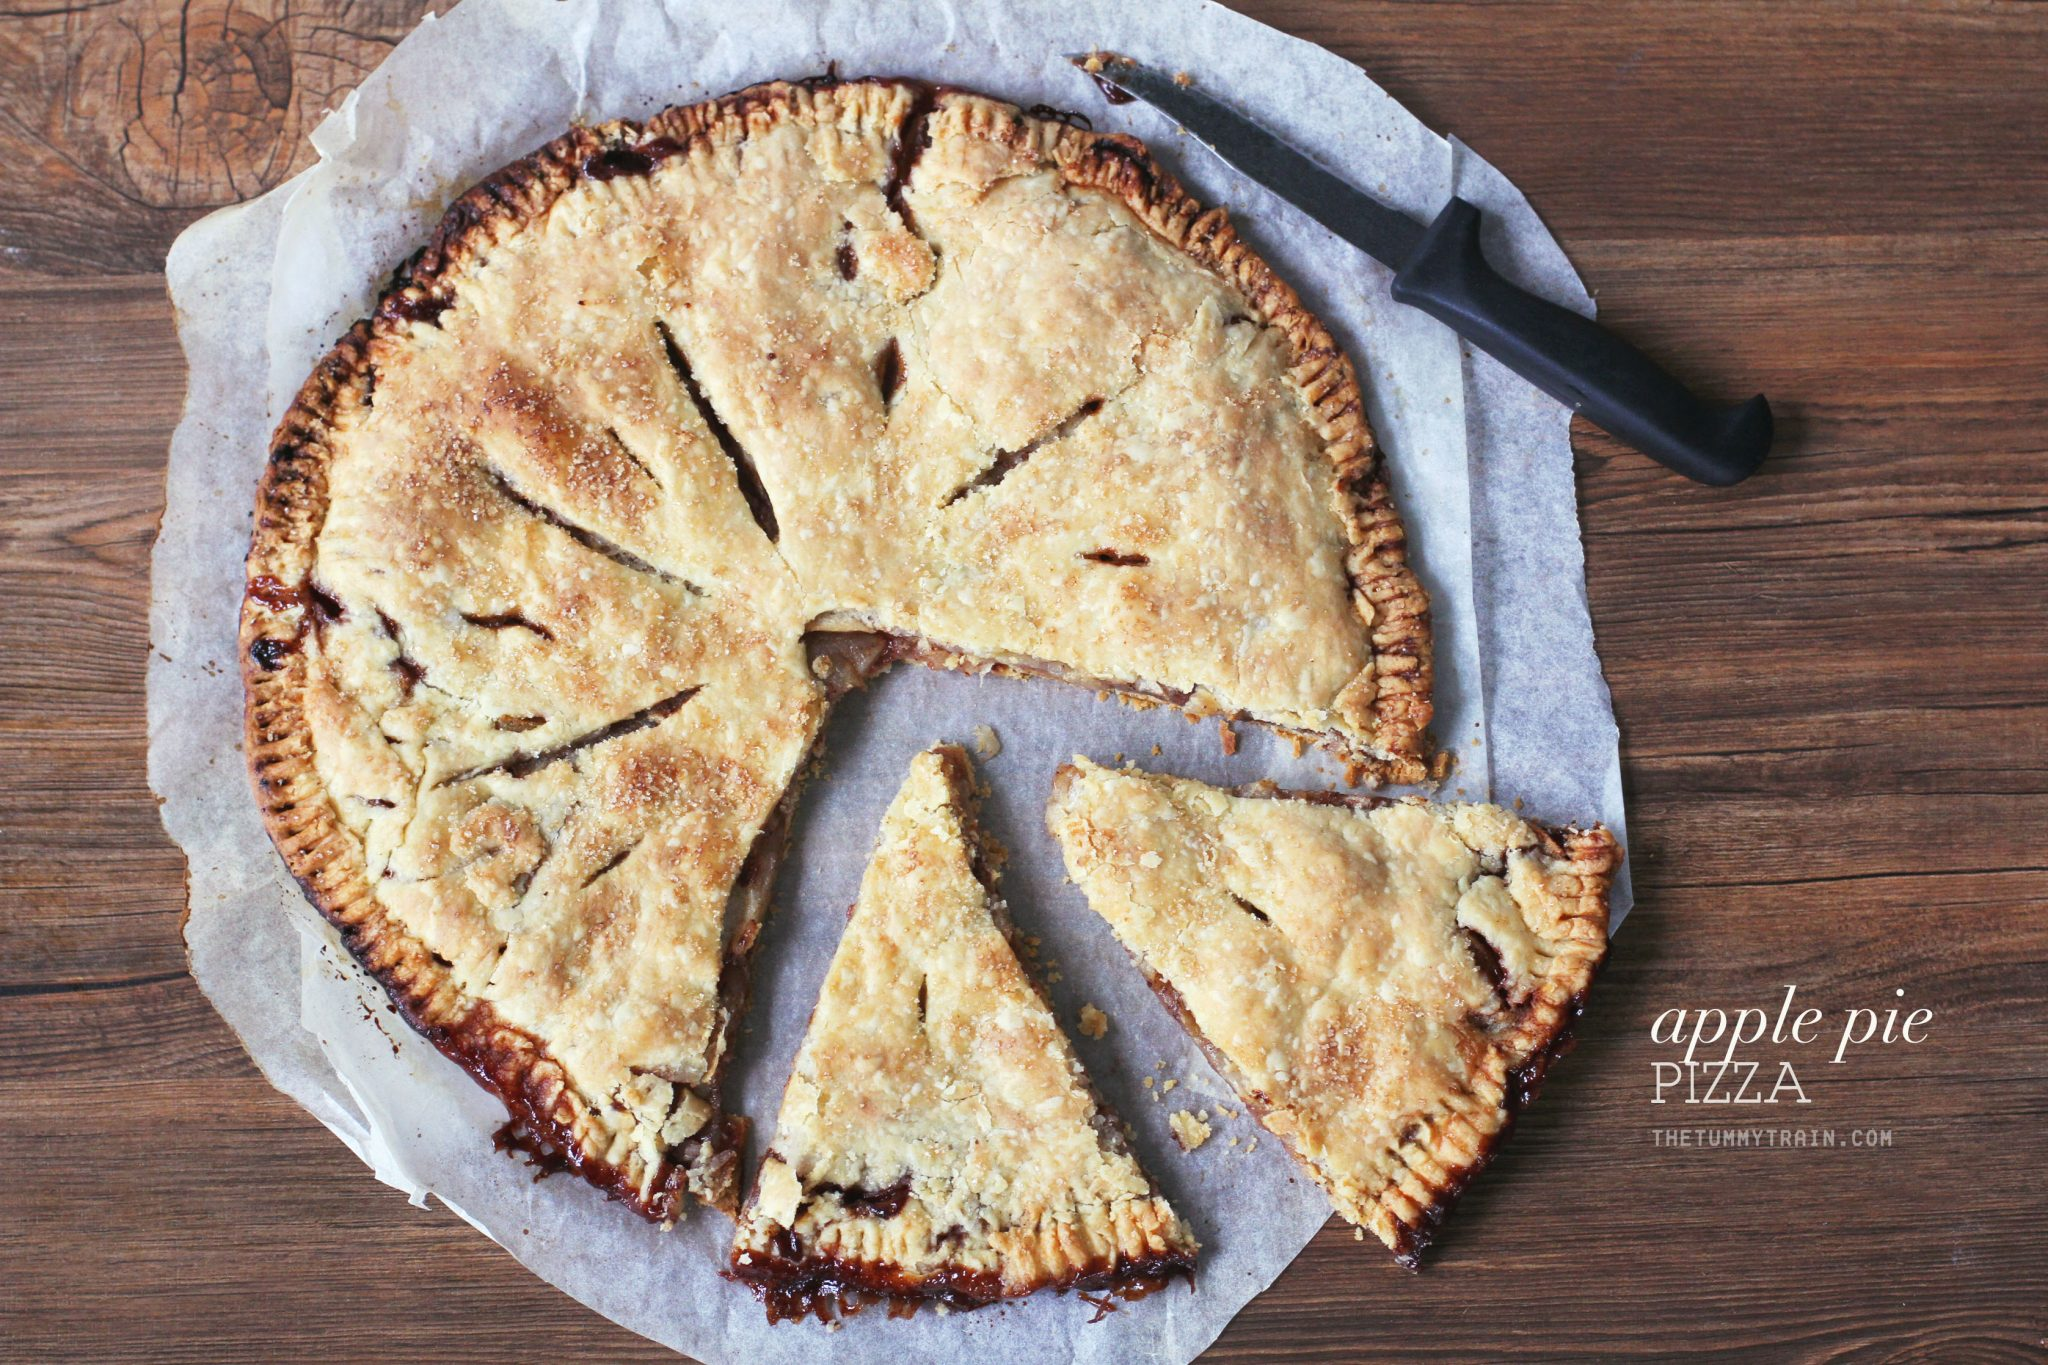 Apple Pie Pizza 1 - Let this Apple Pie Pizza capture your pizza-loving heart